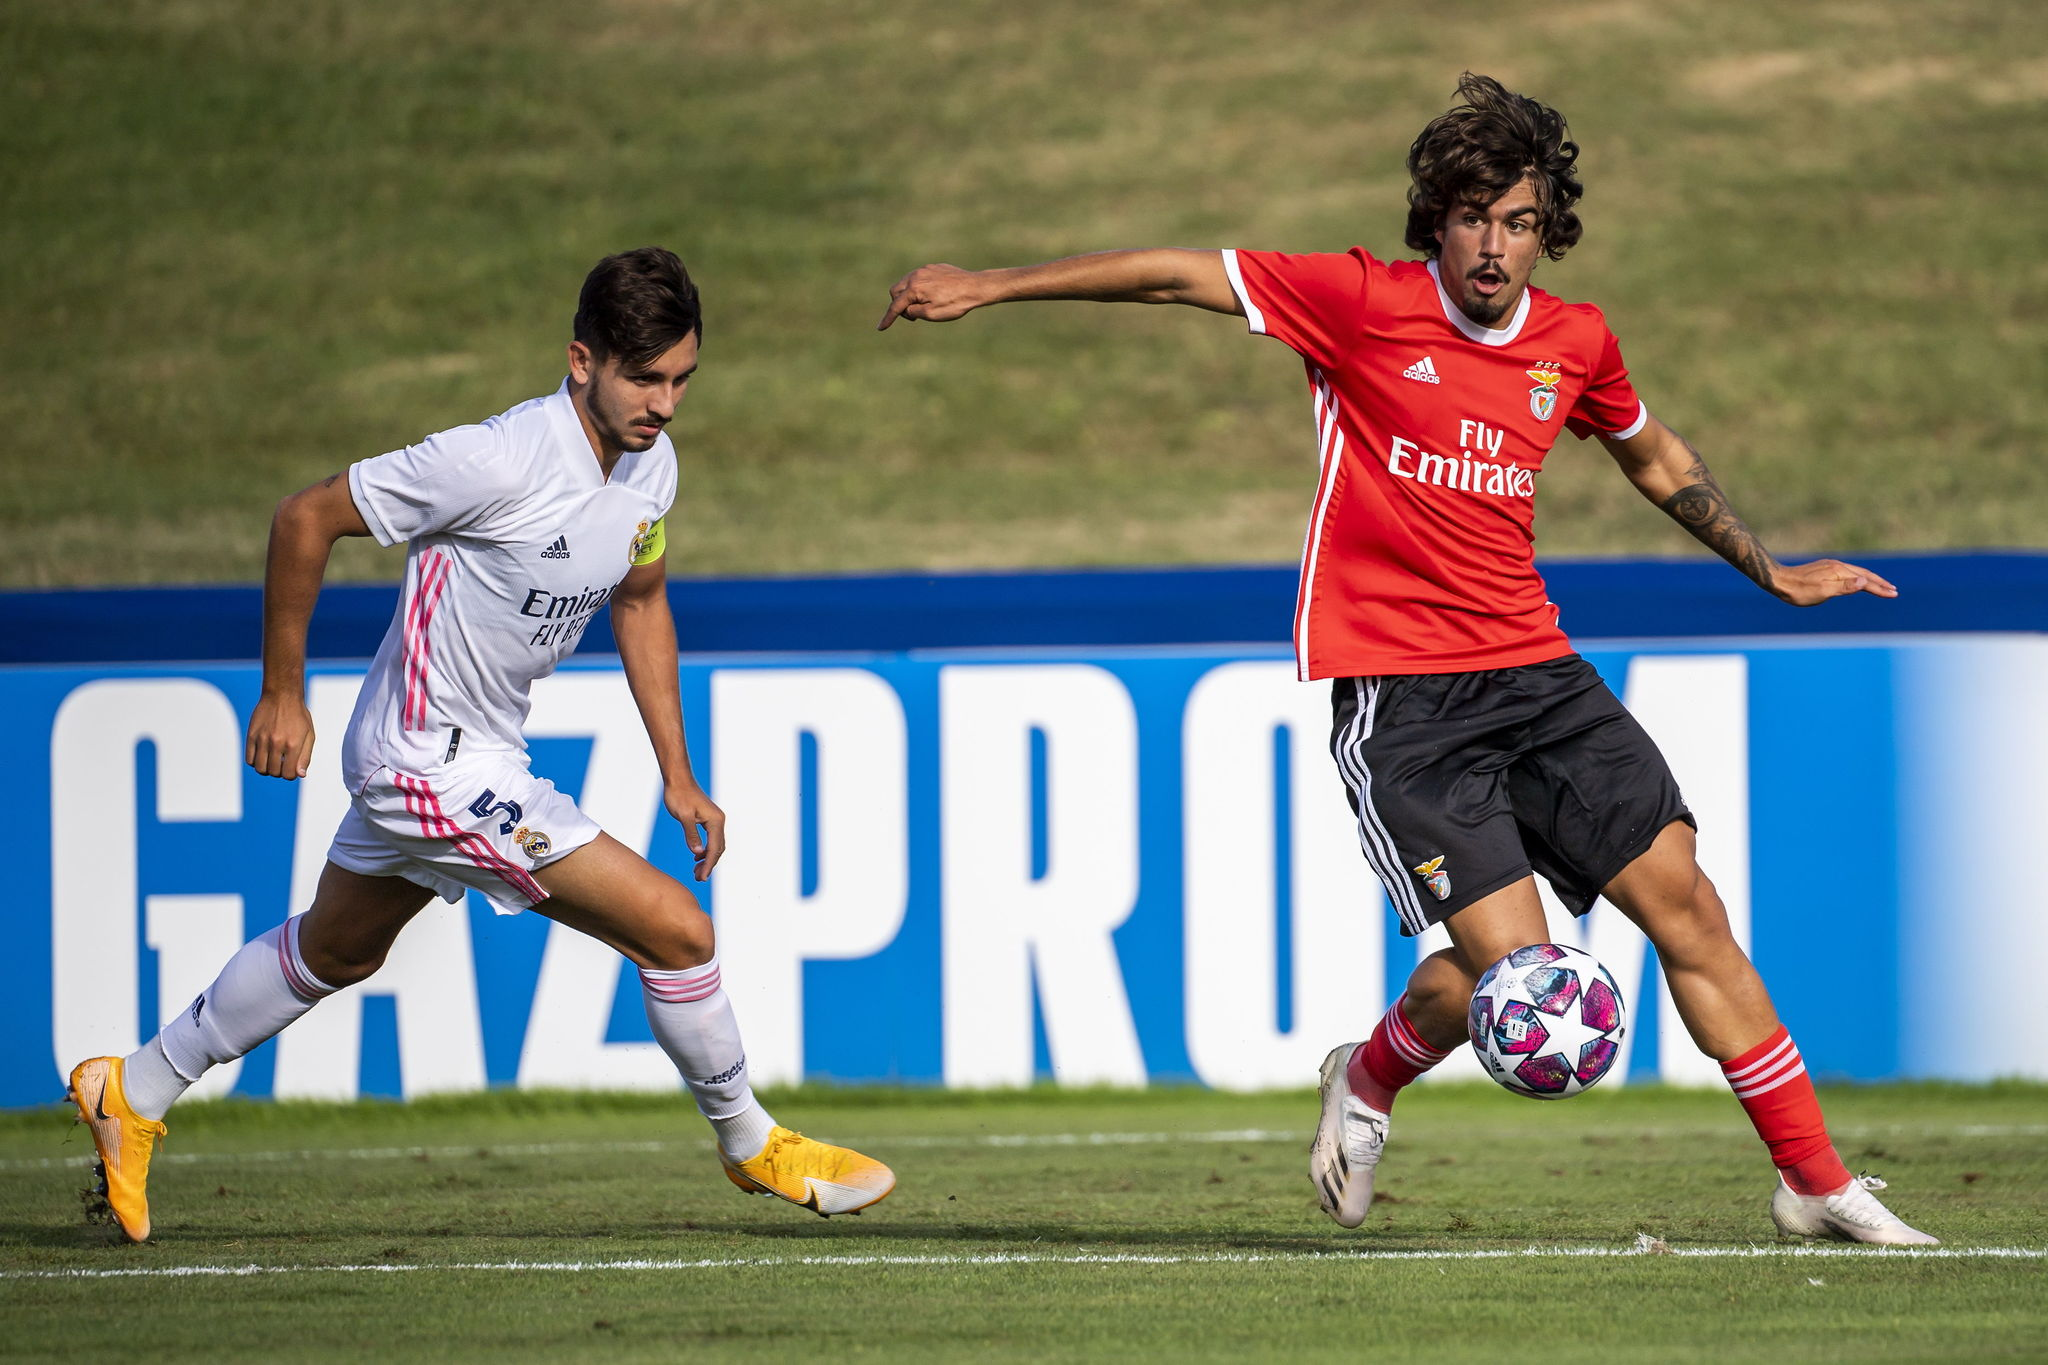 Nyon (Switzerland Schweiz Suisse), 25/08/2020.- Real Madrids defender Victor Chust, left, in action against Benficas forward Tiago Araujo, right, during the UEFA lt;HIT gt;Youth lt;/HIT gt; League final soccer match between SL Benfica from Portugal and Real Madrid CF from Spain at the Colovray Sports Centre stadium in Nyon, Switzerland, 25 August 2020. (España, Suiza) EFE/EPA/JEAN-CHRISTOPHE BOTT